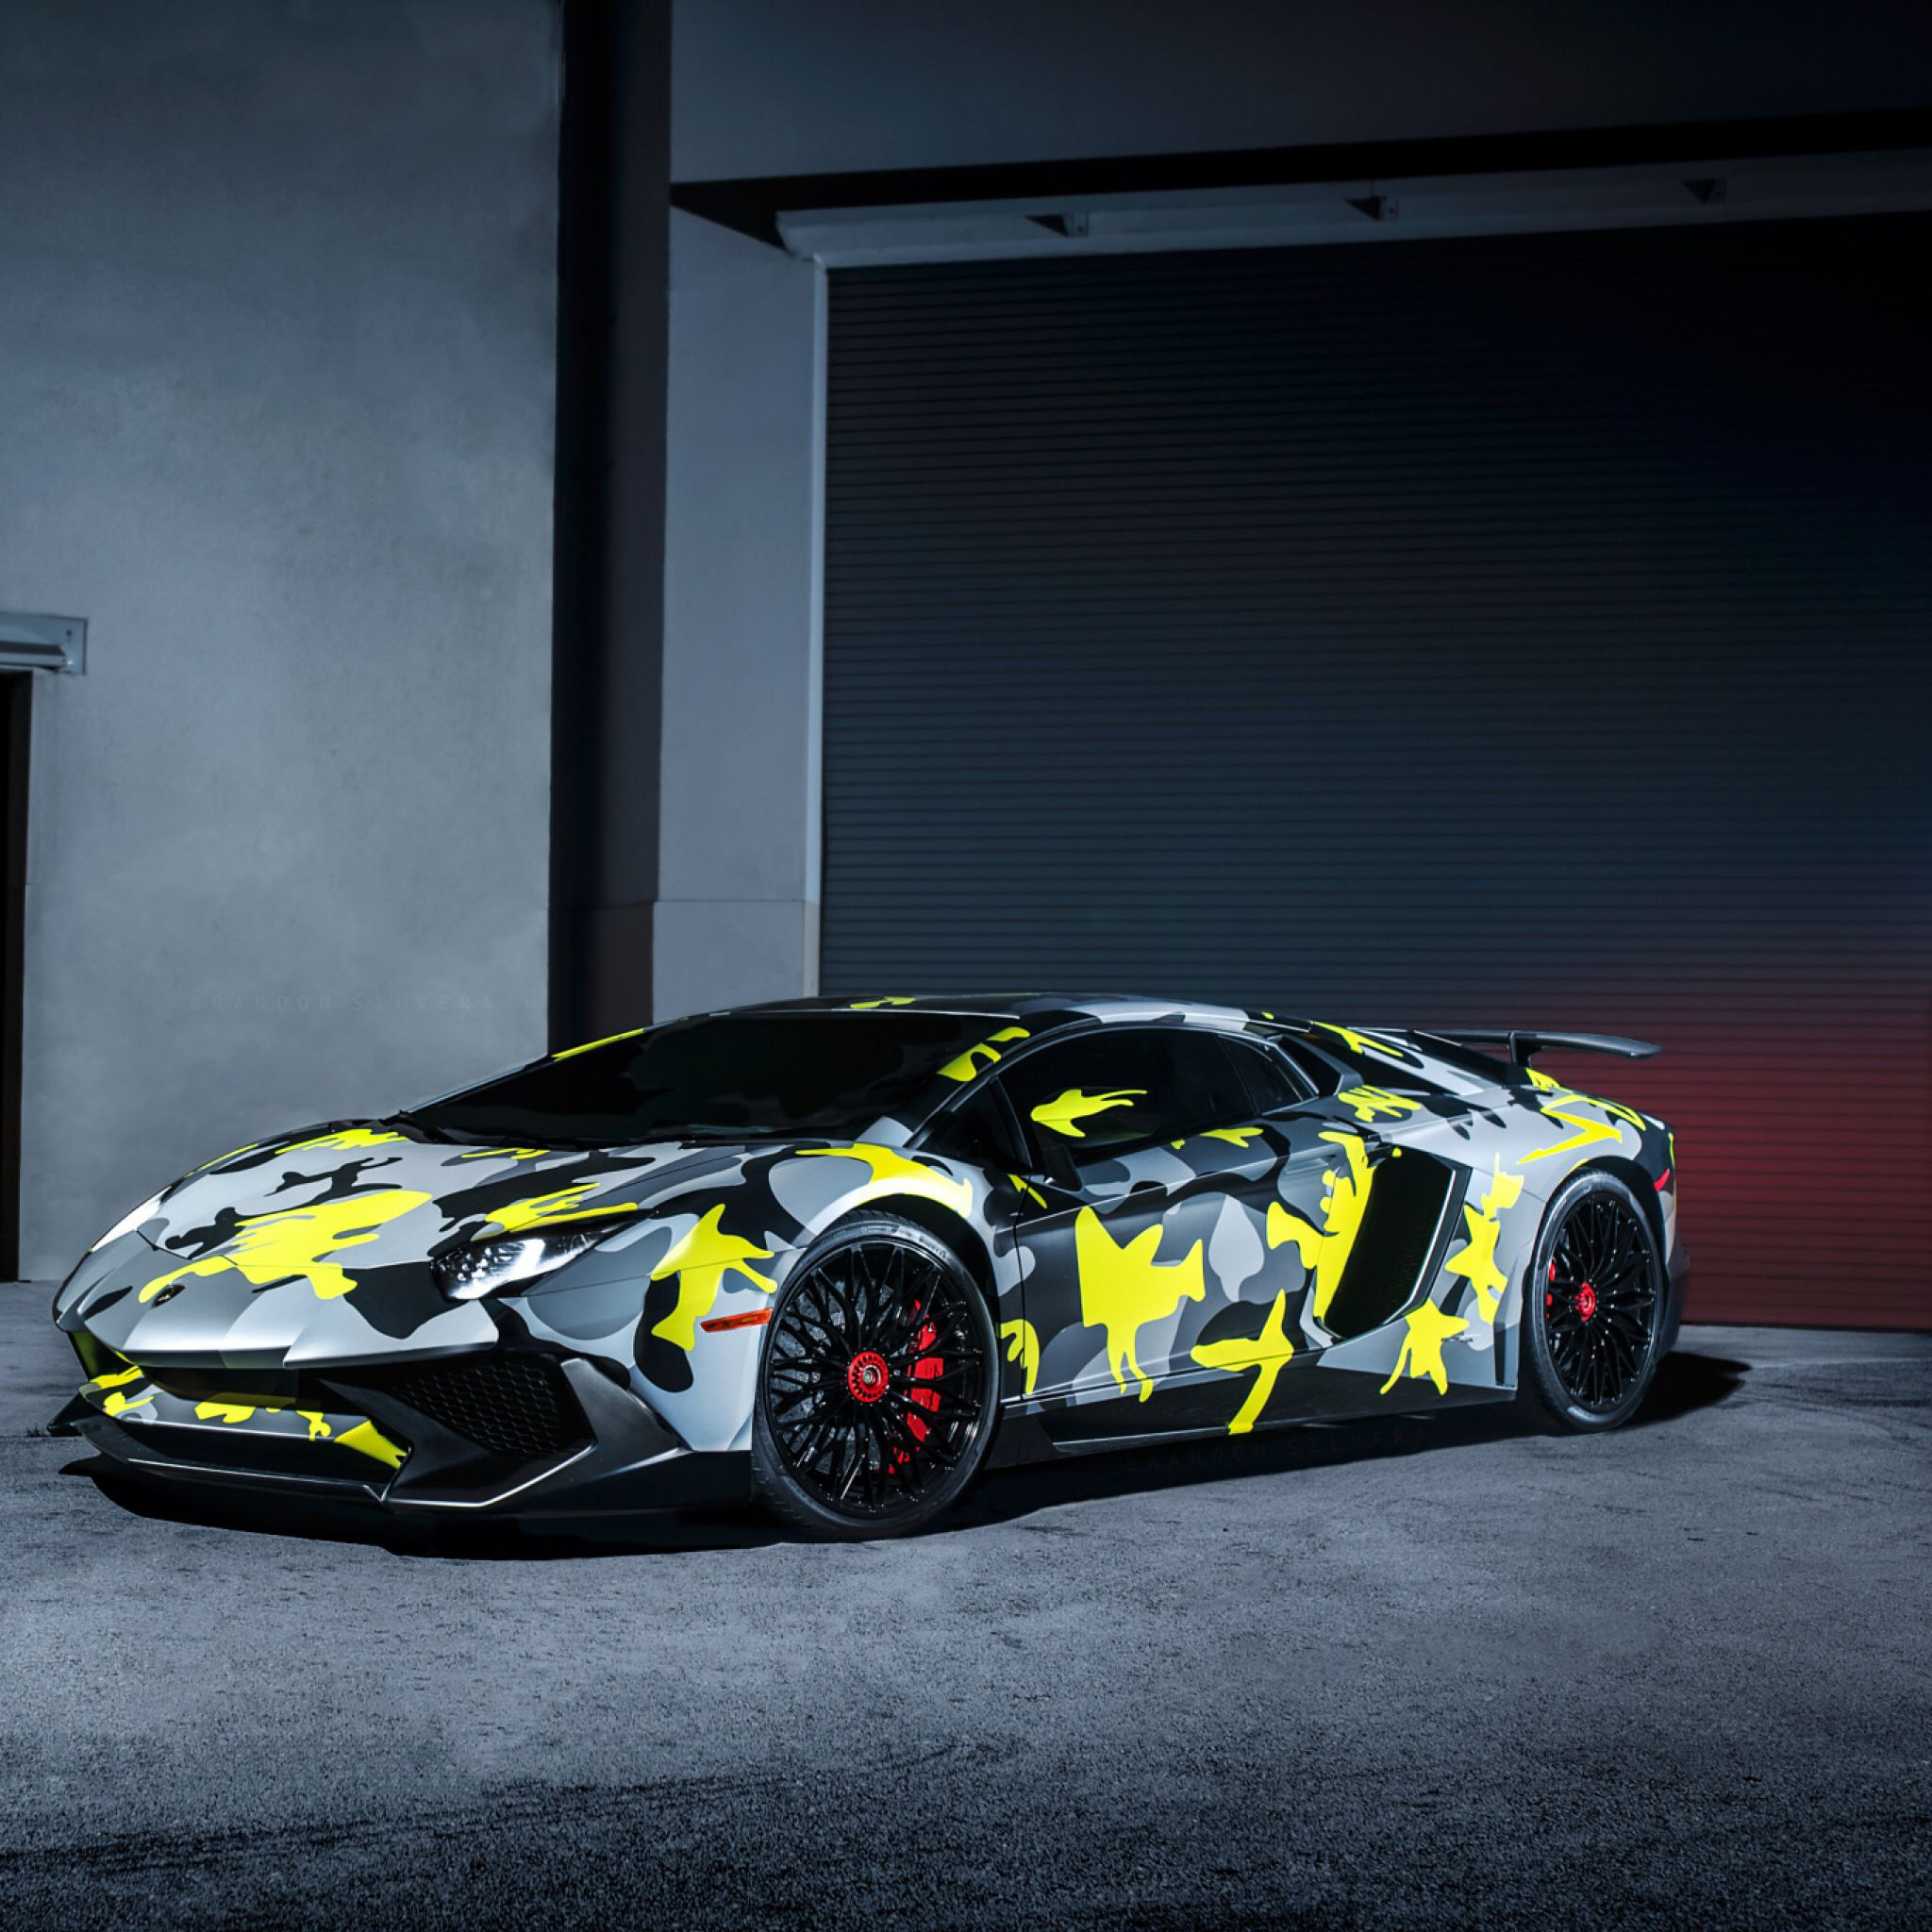 Aventador Lamborghini Cars Car Wallpapers Sports Car Wallpaper